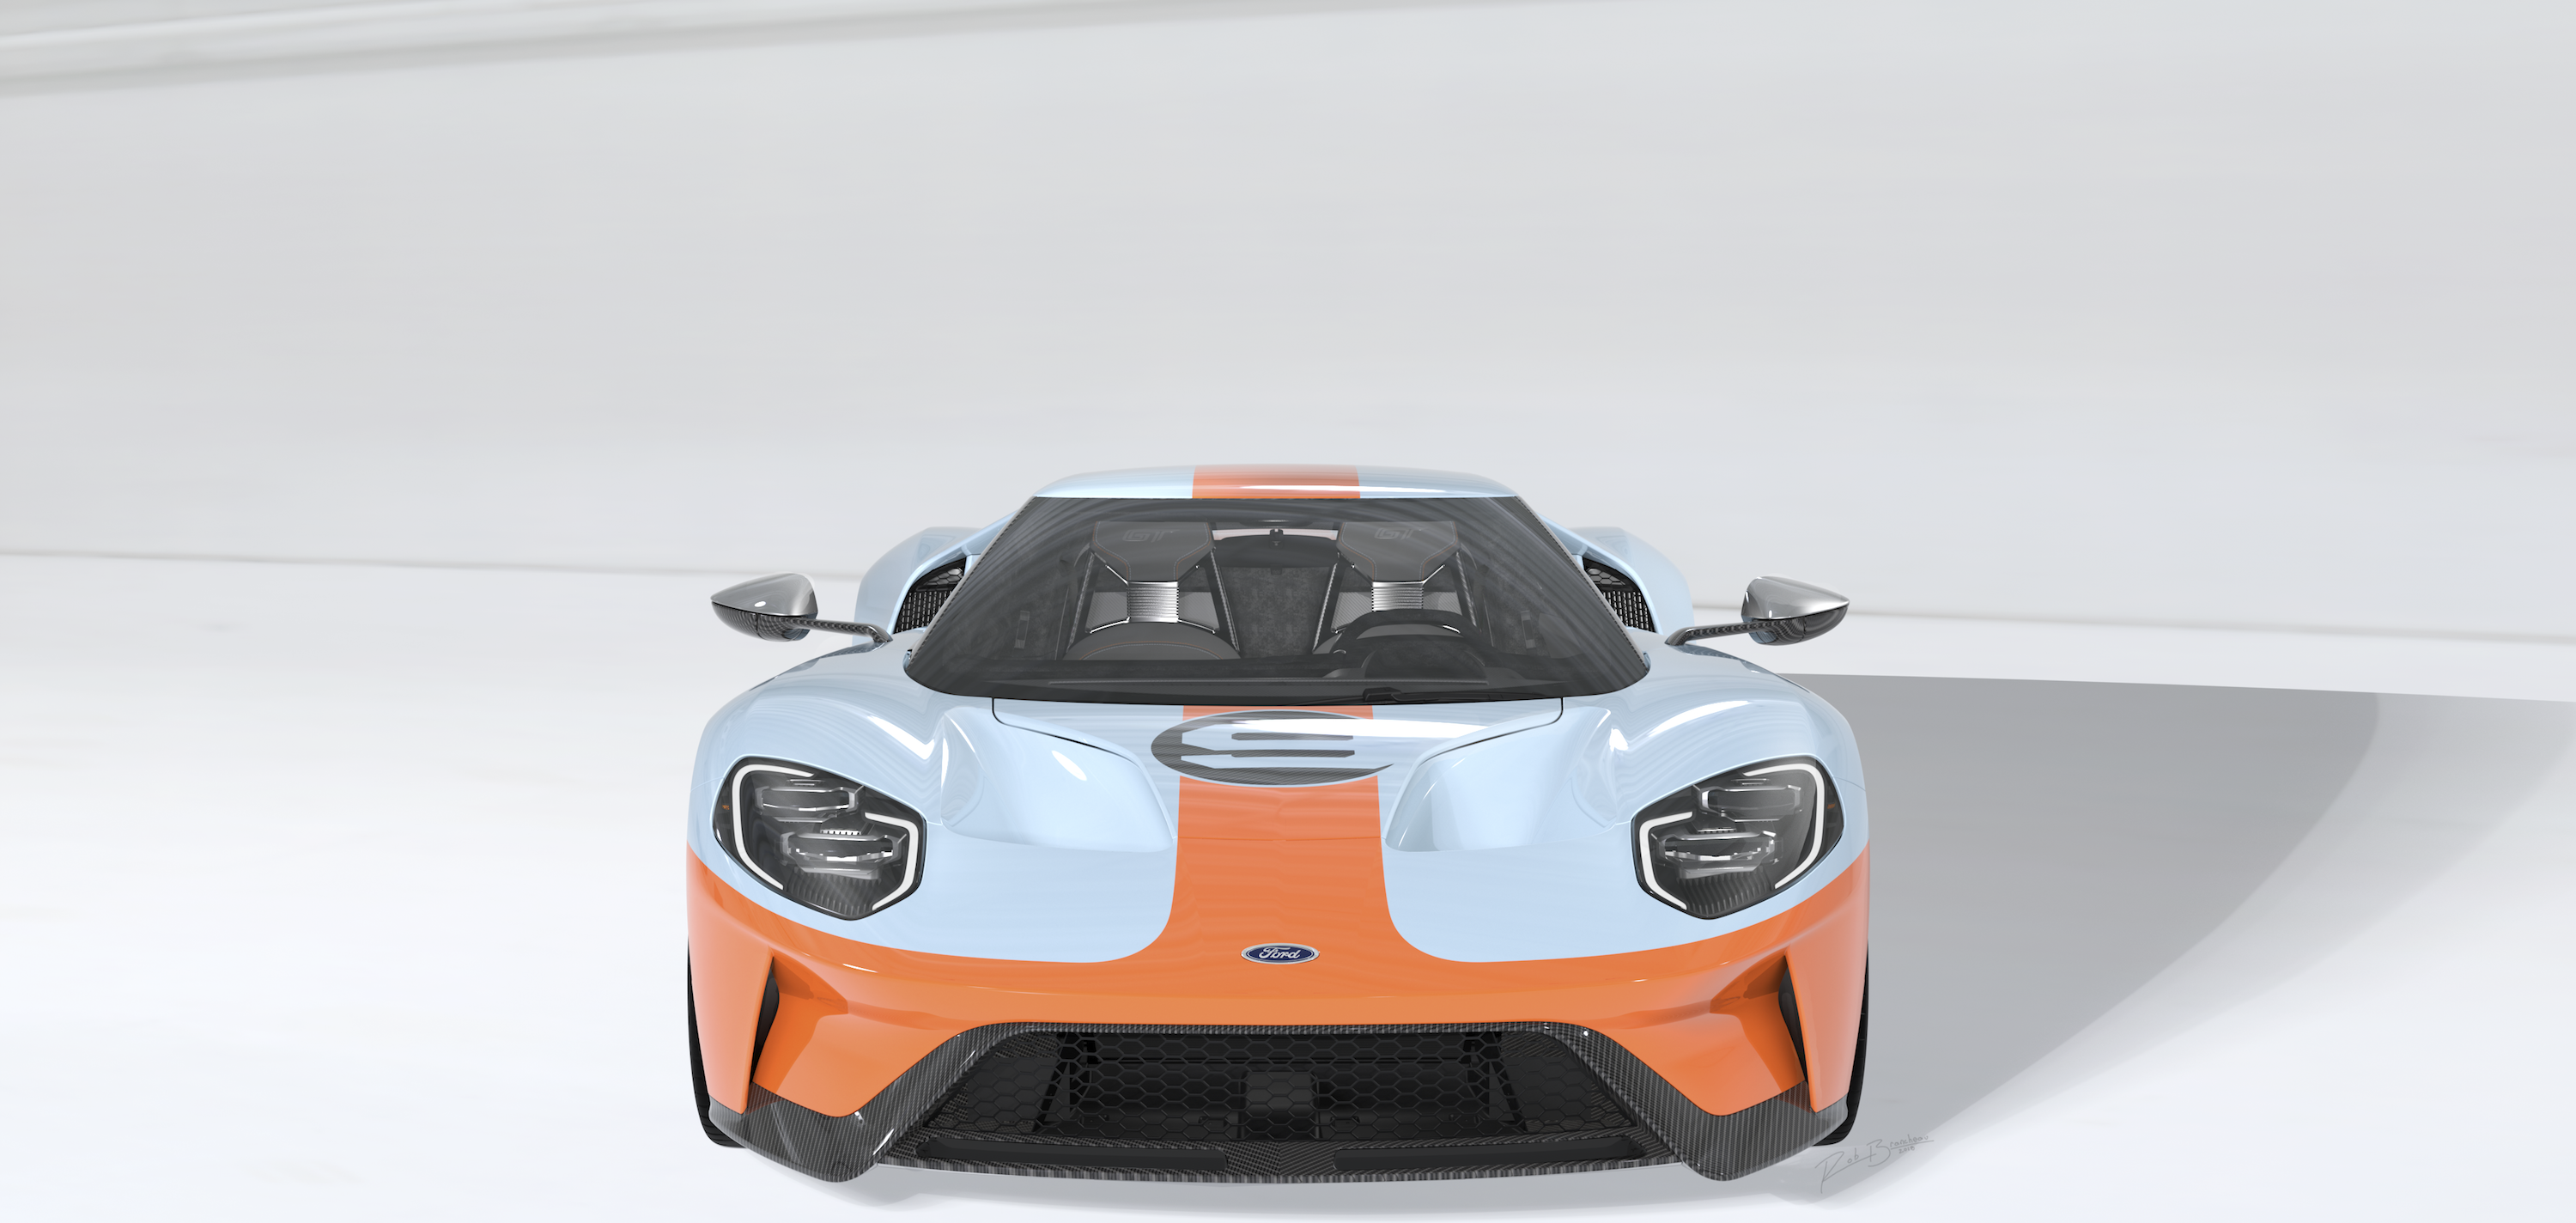 2019 Ford Gt Heritage Edition Is An Exquisite Gulf Liveried Tribute